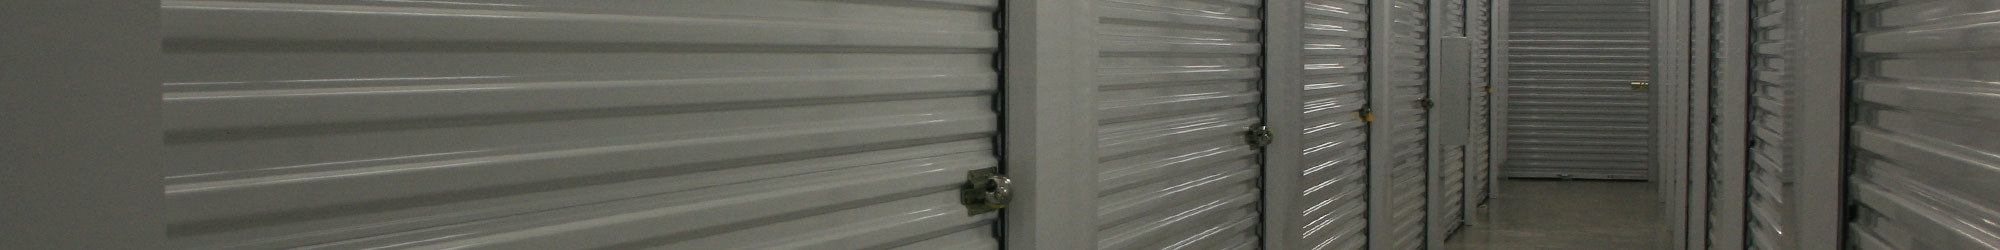 Reviews of self storage in Winter Park FL